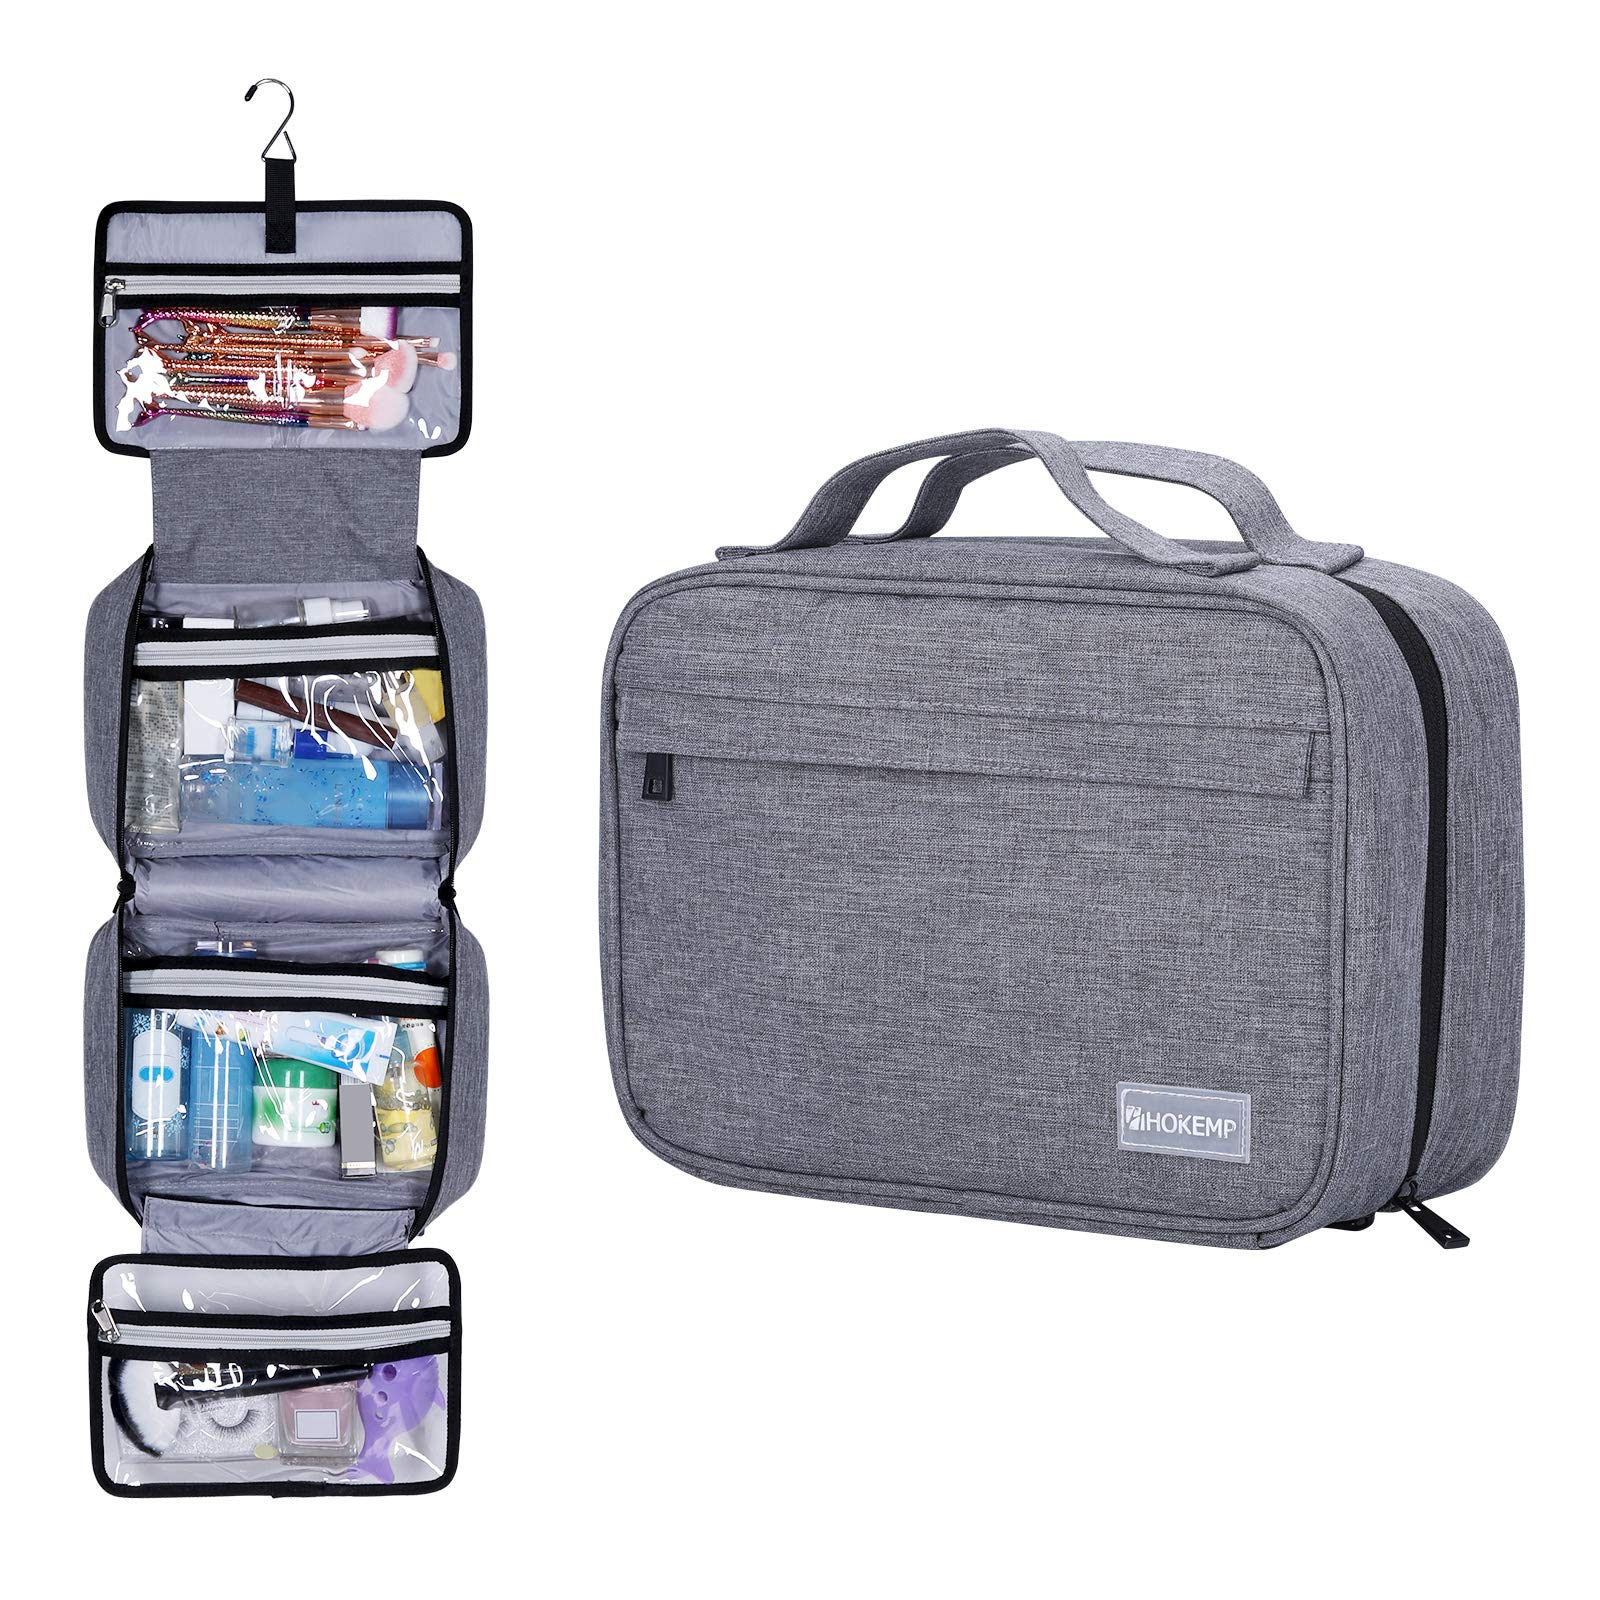 Hanging Toiletry Bag Travel For Men and Women - Waterproof Bathroom Shower Bag For Travel Cosmetic Bag Portable Makeup Pouch (Gray)